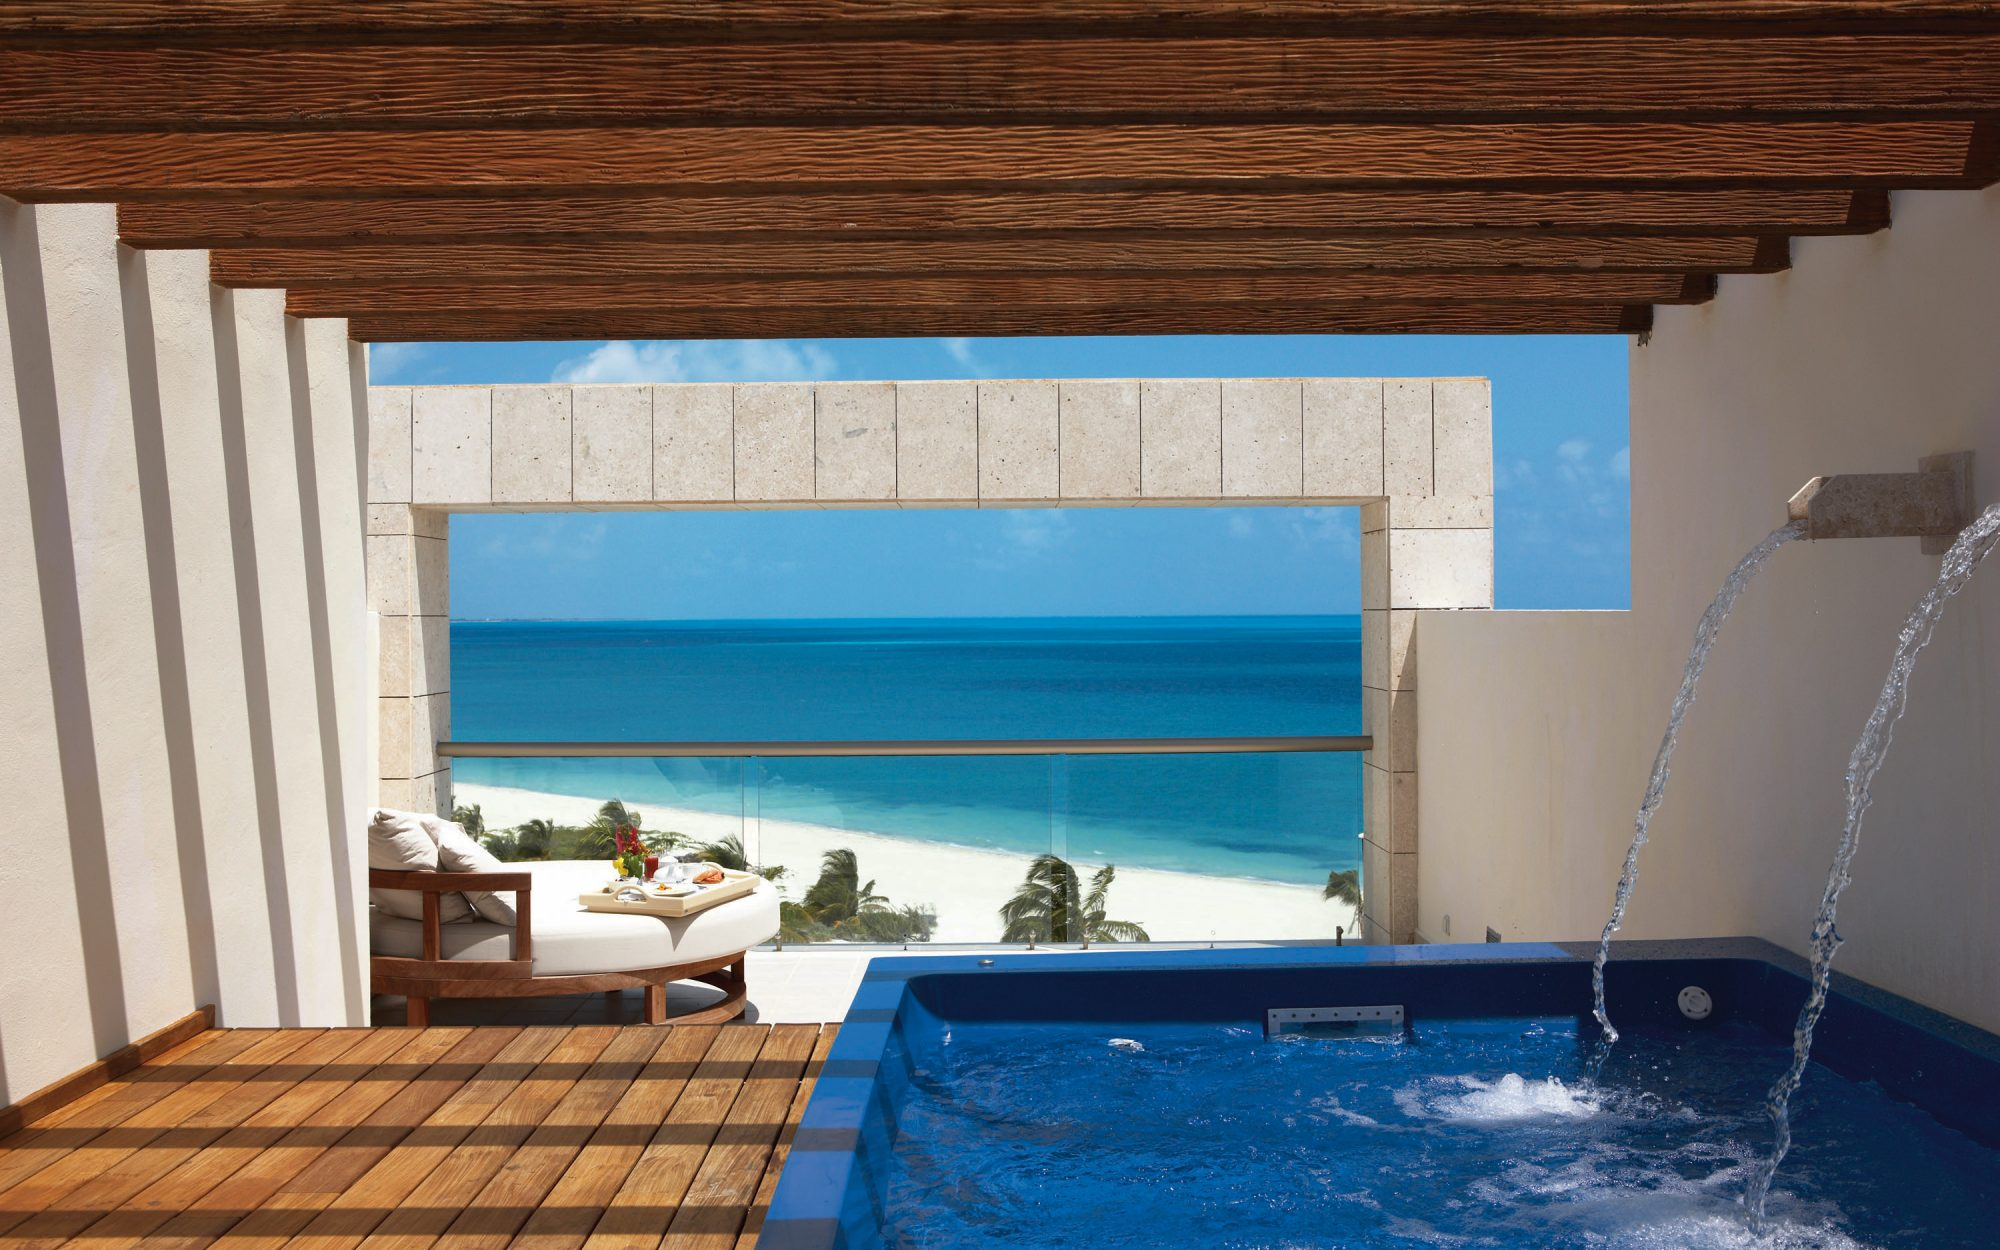 Best Mexico Beach Resorts: Excellence Playa Mujeres